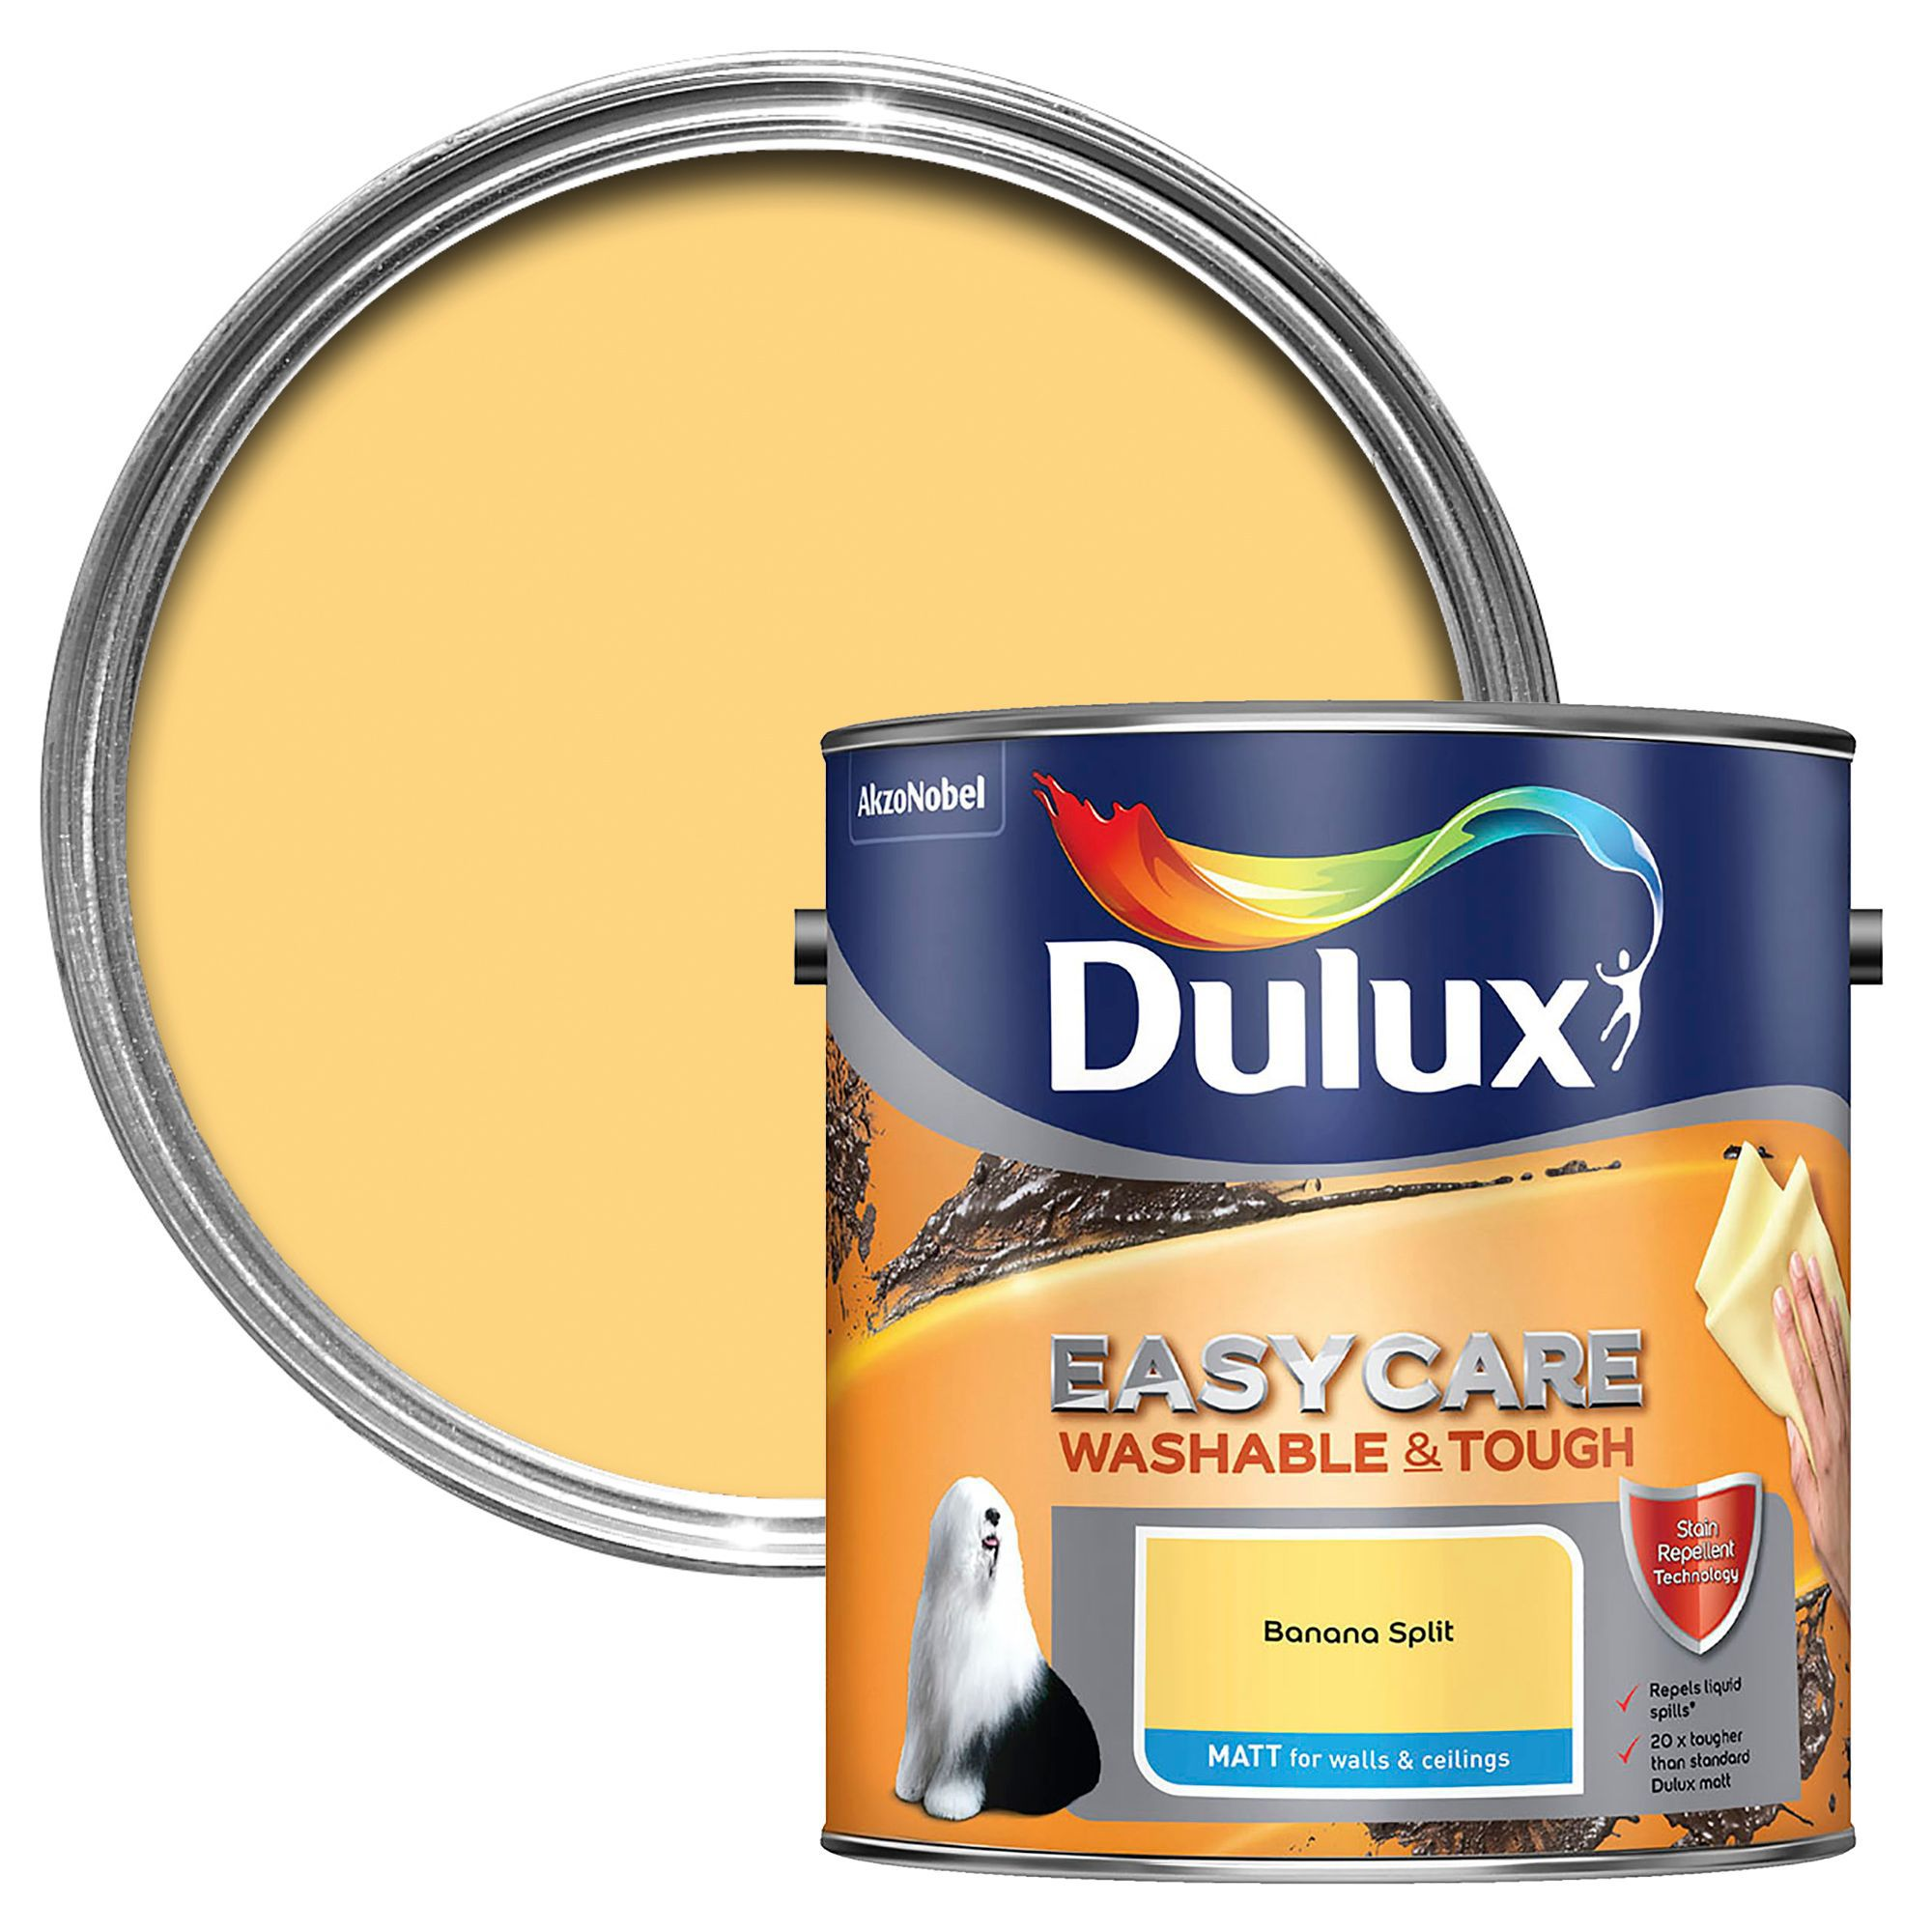 Dulux Easycare Banana Split Matt Emulsion Paint 2.5L | Departments ...